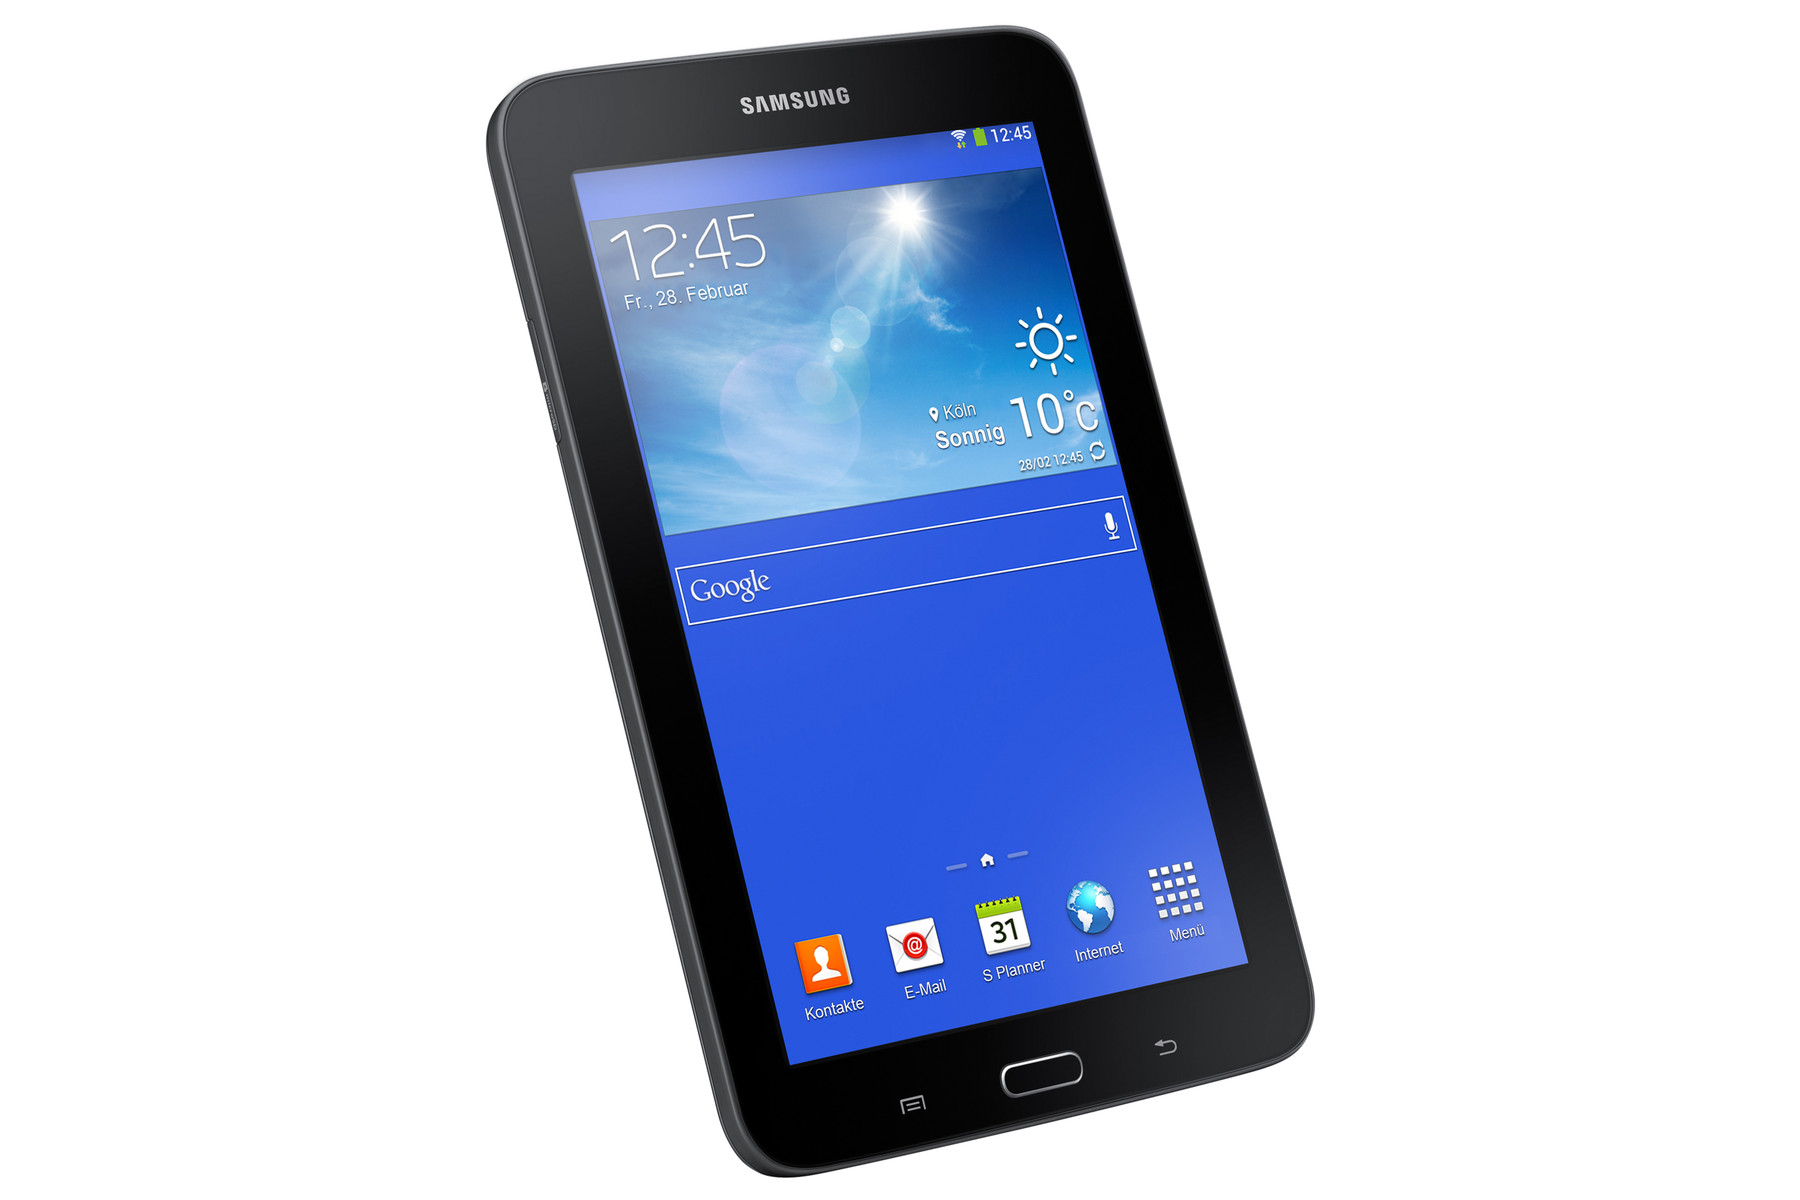 review update samsung galaxy tab 3 7 0 lite tablet. Black Bedroom Furniture Sets. Home Design Ideas